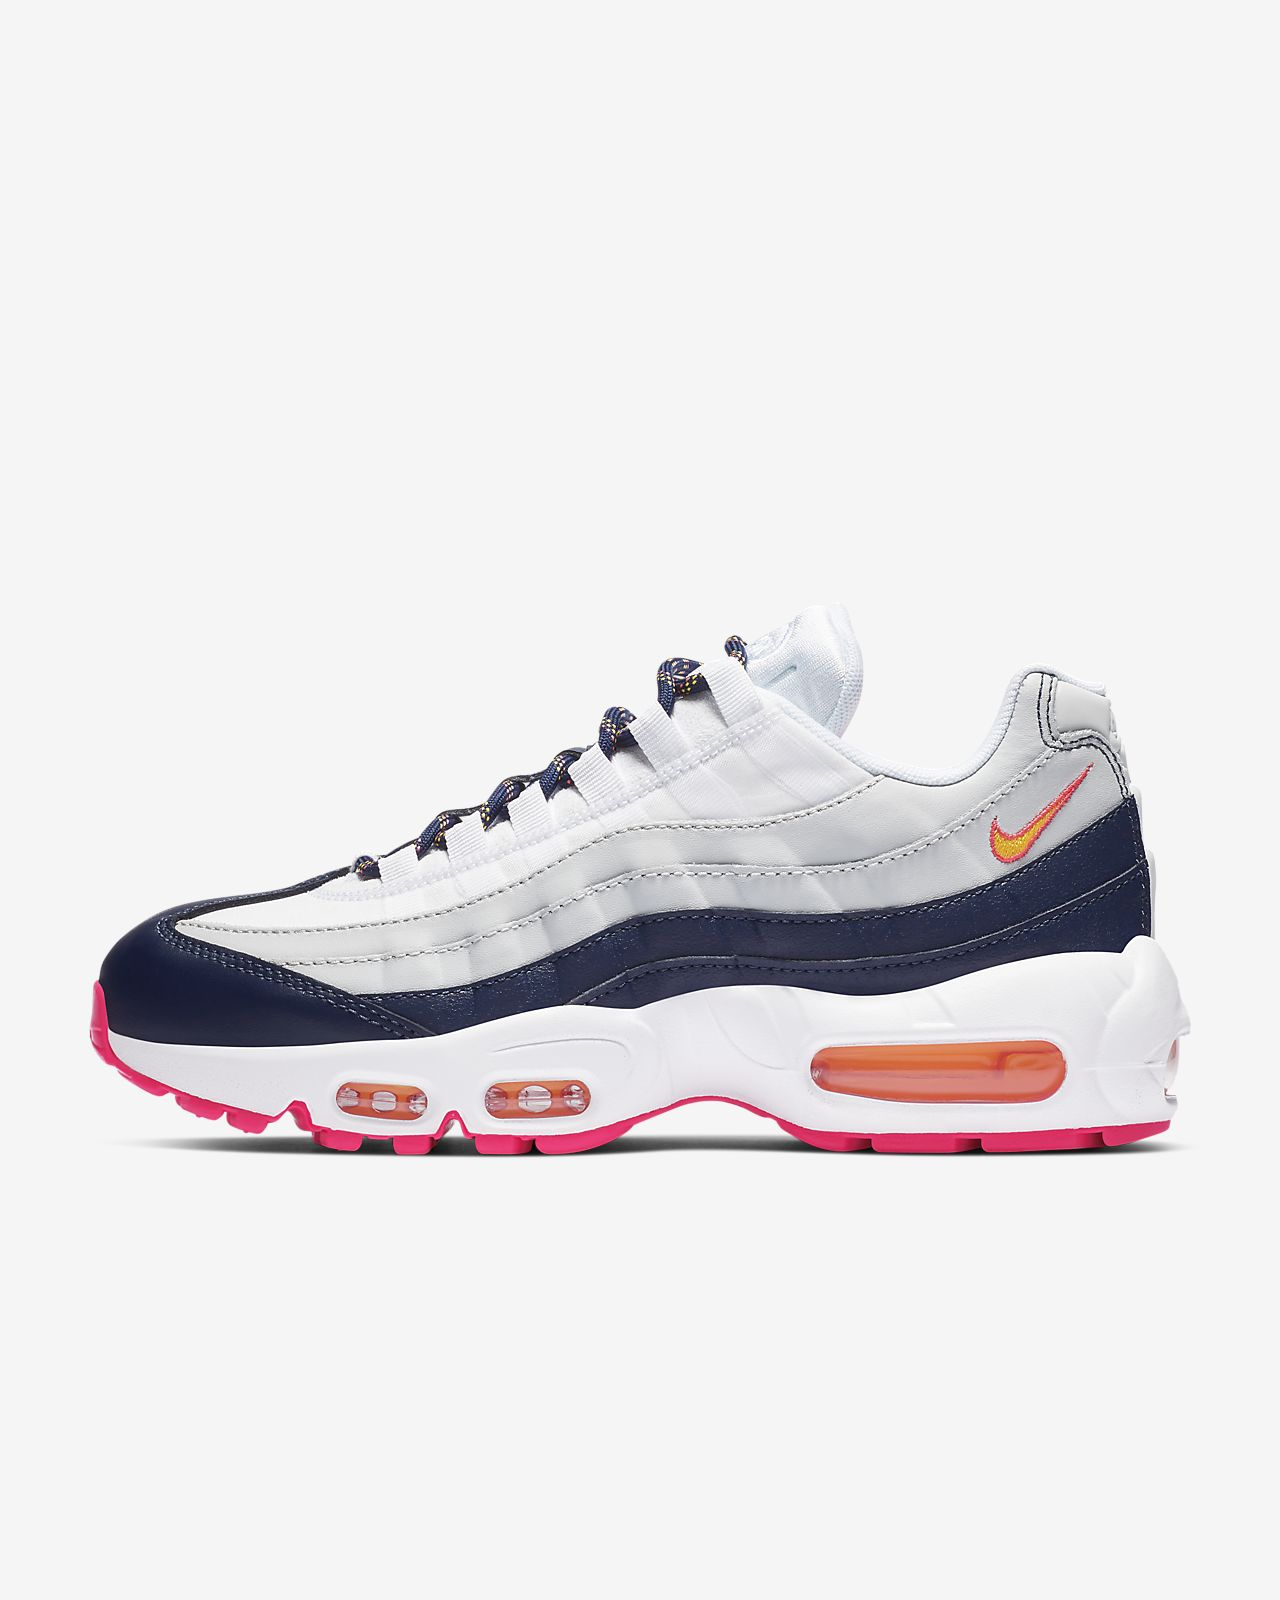 wholesale dealer 1b20b 7e842 ... Nike Air Max 95 Premium Damenschuh